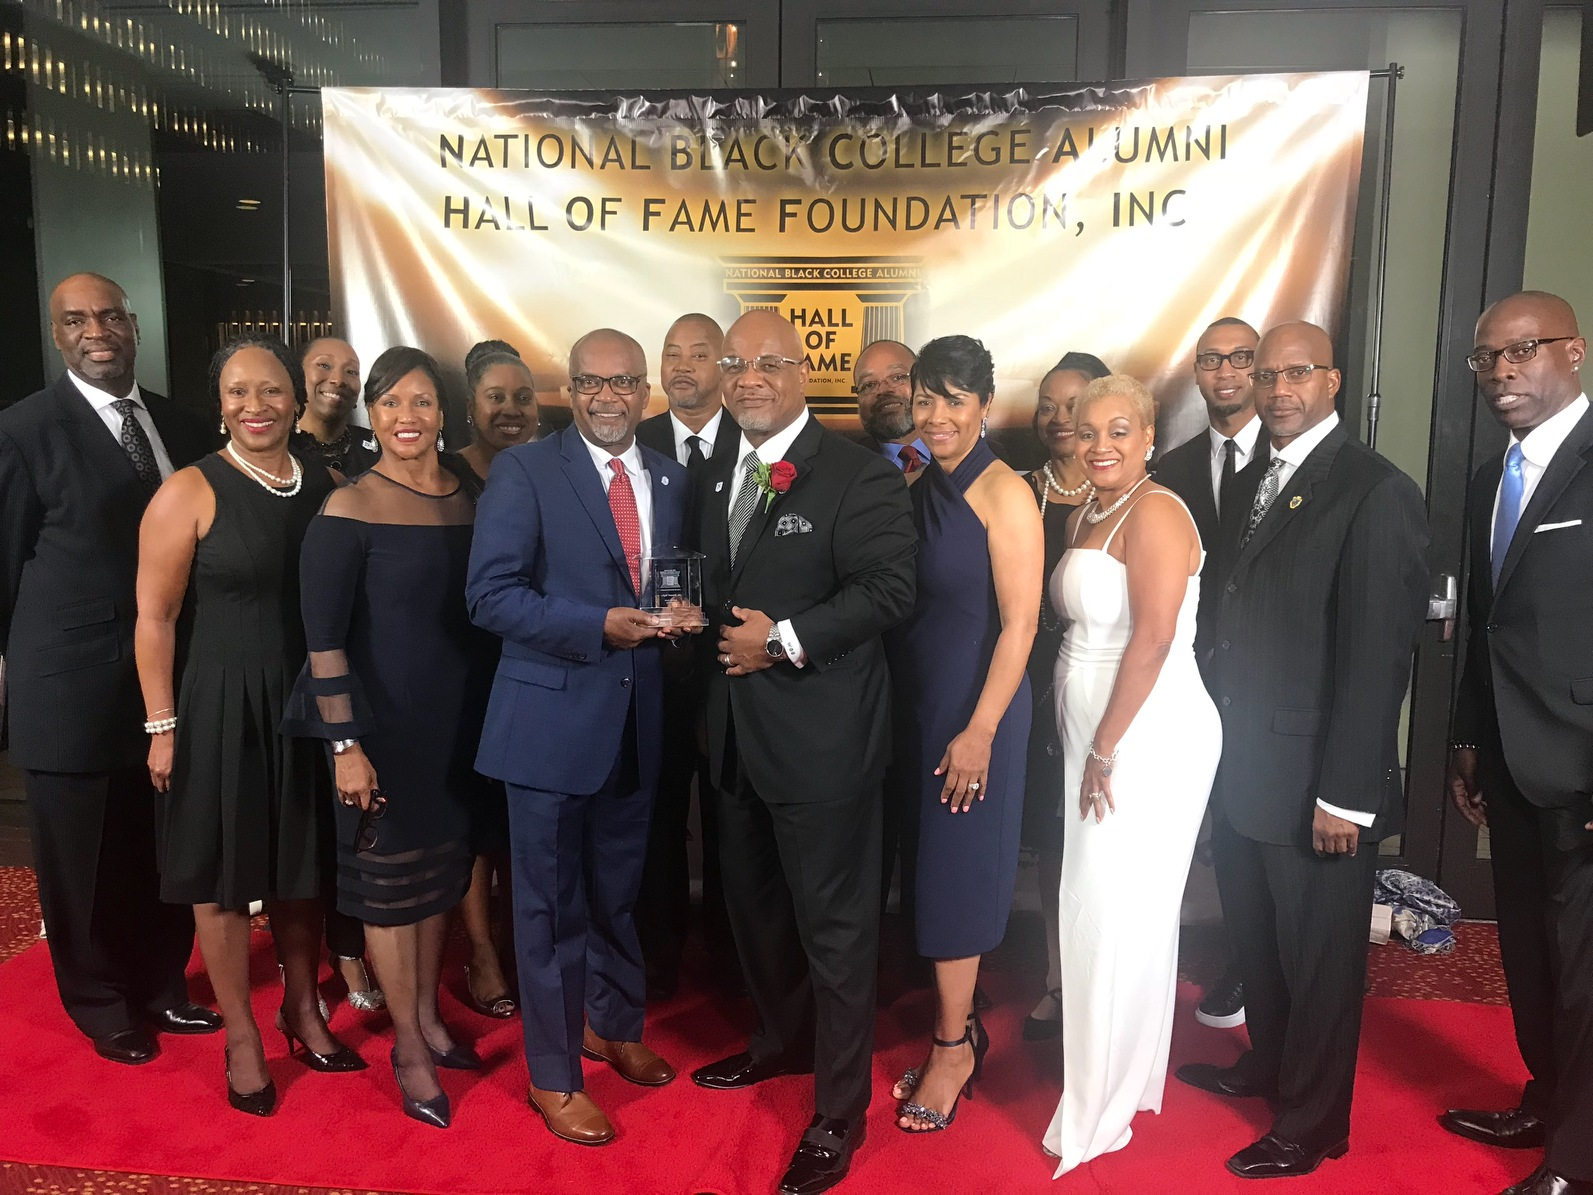 Hall of Fame honoree Dowell Taylor, director of bands, is congratulated by JSU President William B. Bynum Jr. and first lady Deborah Bynum during a recognition in Atlanta. Others celebrants include employees and alumni of Jackson State University.